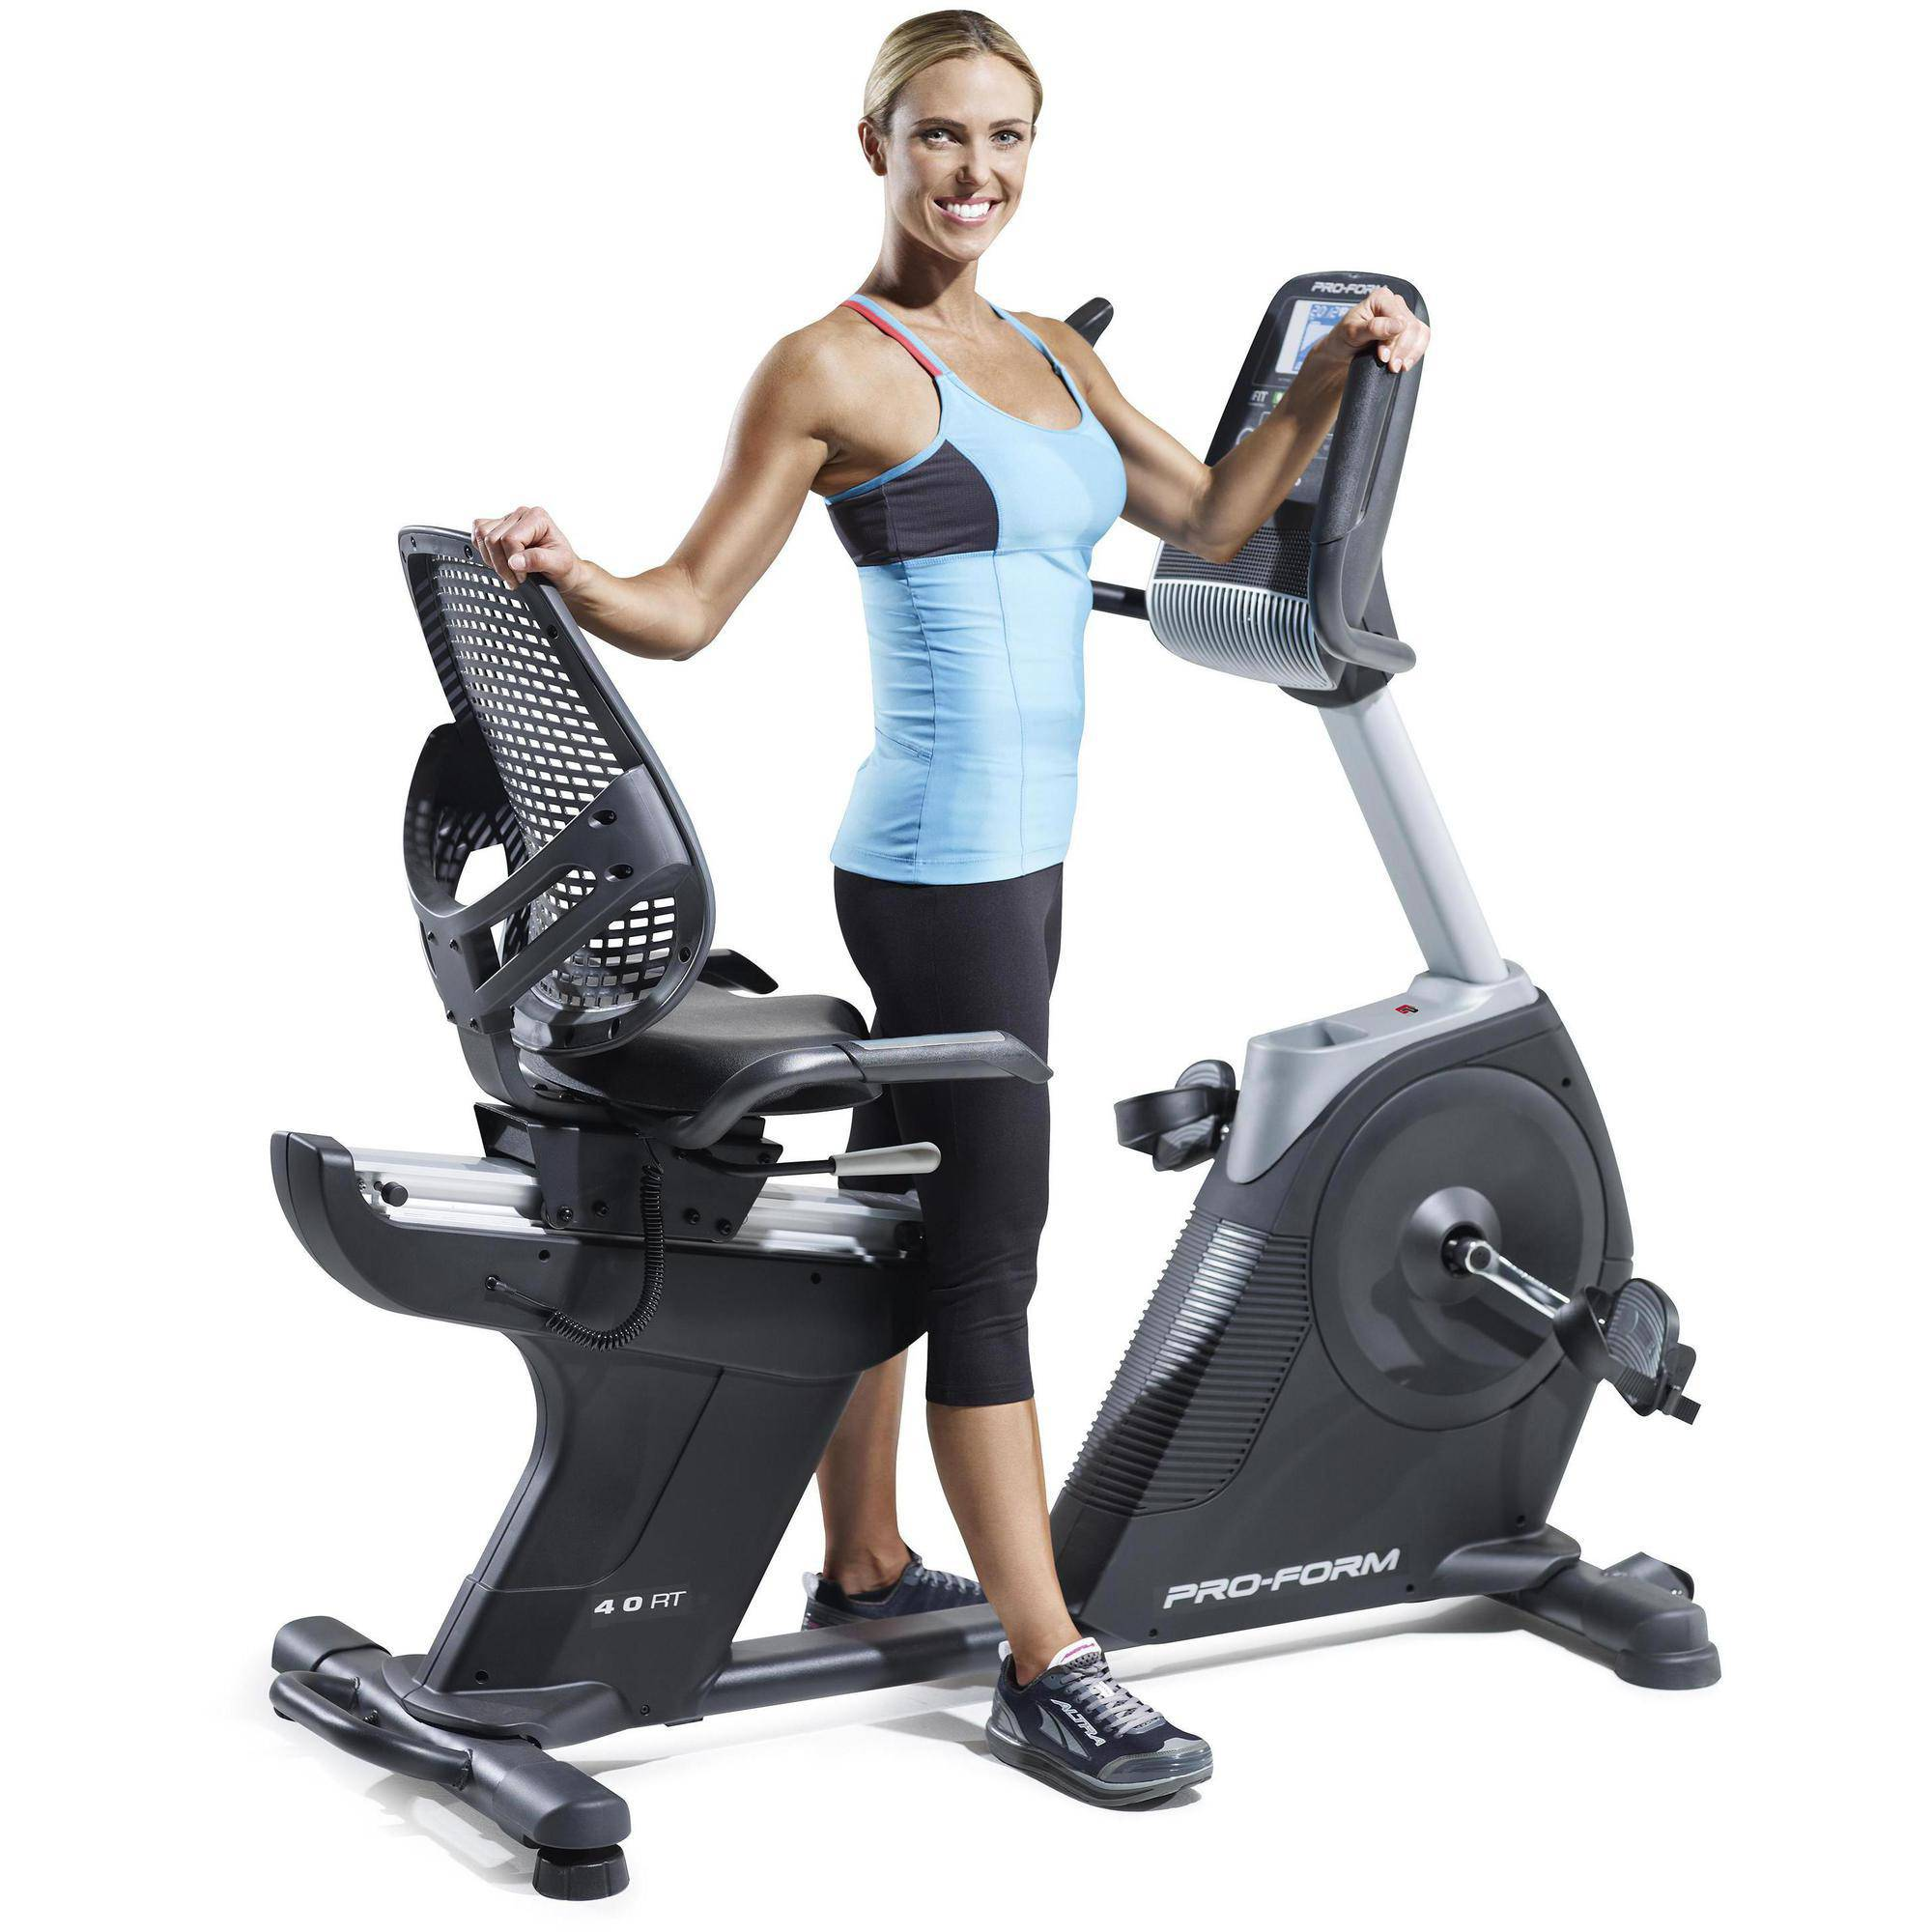 ProForm 4.0RT Recumbent Bike